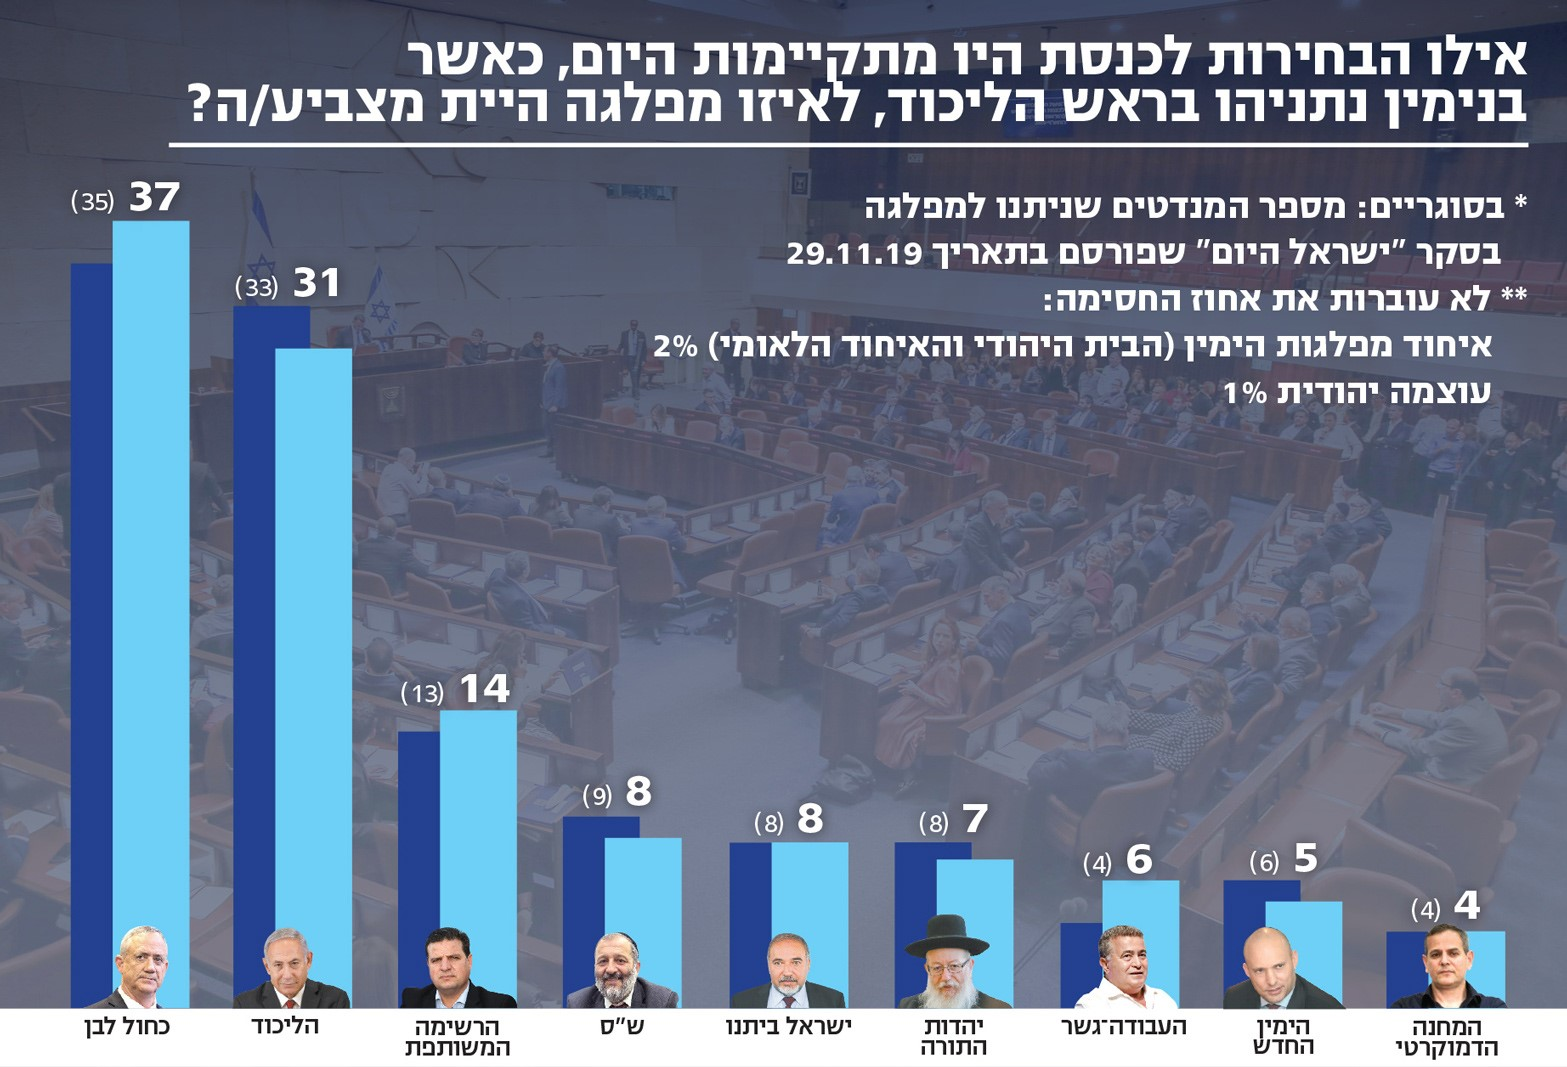 """The poll published on Friday, December 13, by Israel Hayom: """"If the Knesset elections were held today, with Benjamin Netanyahu at the head of the Likud, for which party would you vote?"""" From left to right appear the results for the nine parties that would enter the 23rd Knesset: Blue & White, Likud, The Joint List, Shas, Yisrael Beytenu, United Torah Judaism, Labor-Gesher and The Democratic Camp. *In parentheses are the number of seats given by the Israel HaYom poll conducted on November 29, 2019. **Parties that [according to the poll] won't pass the electoral threshold [3.25%]: Union of Rightist Parties (Jewish Home-National Union) 2%; Otzma Yehudit (Jewish Strength) 1%."""